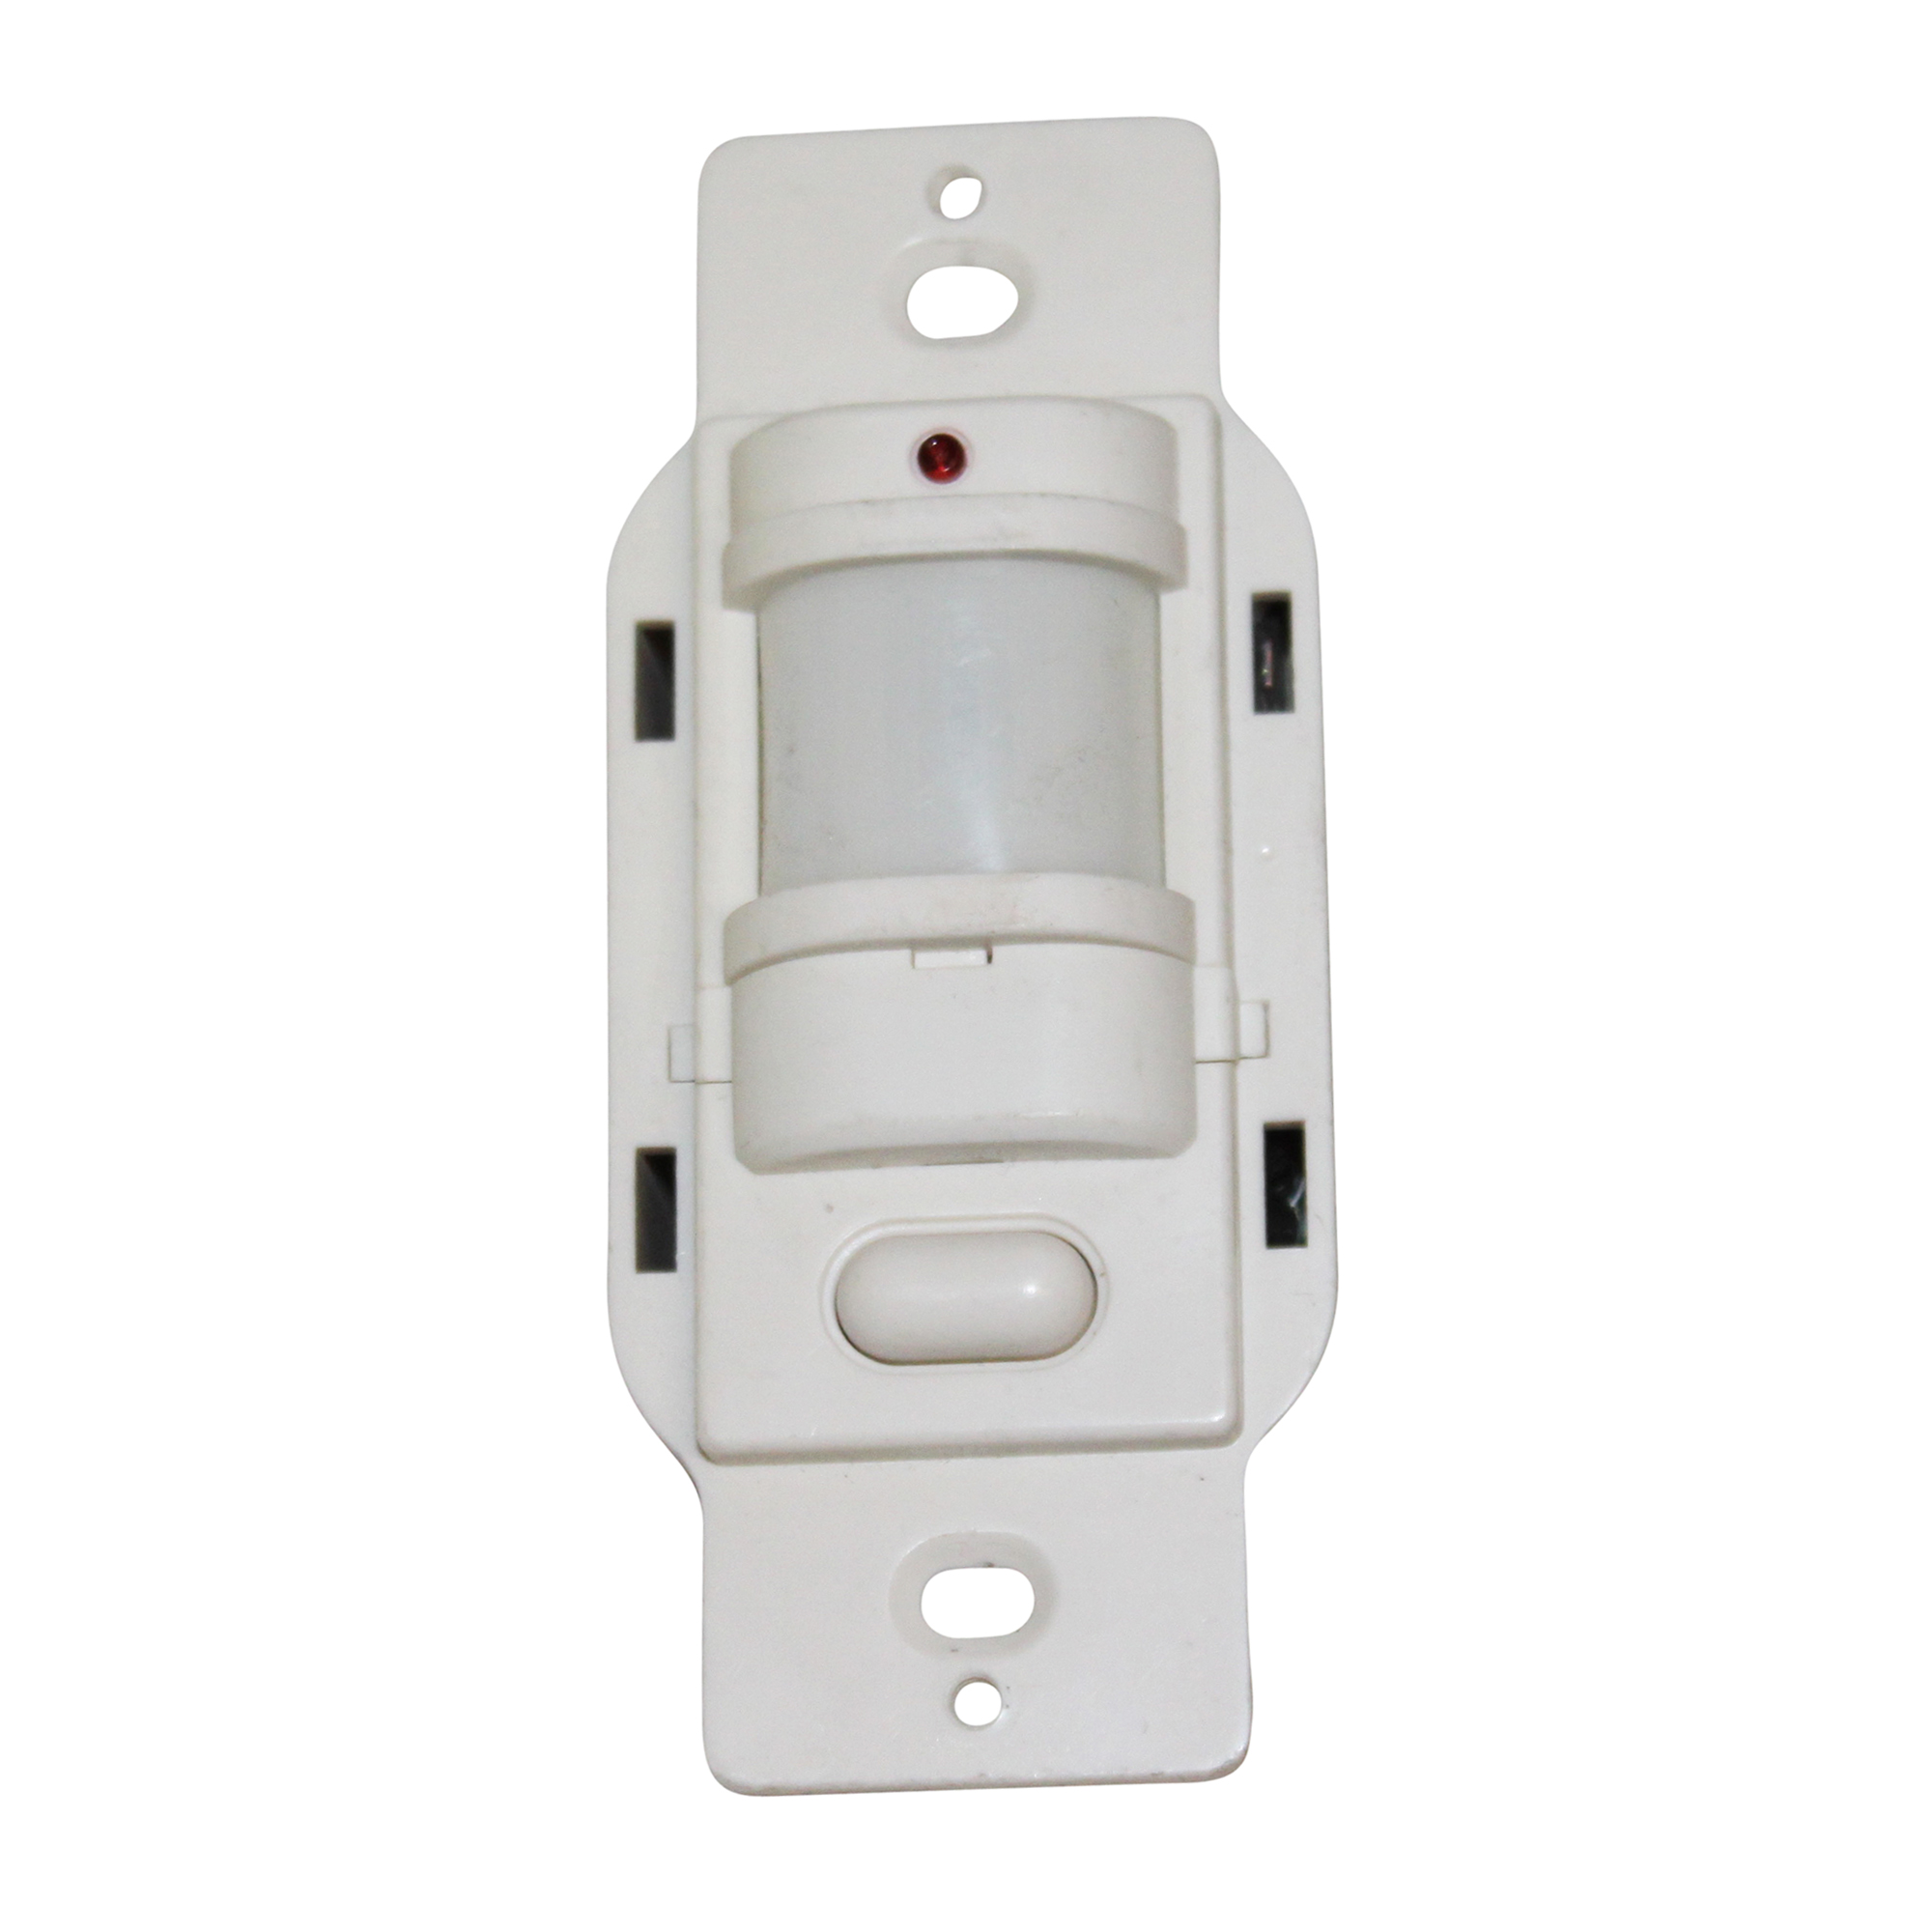 passive infrared automatic light switch occupancy sensor white ebay. Black Bedroom Furniture Sets. Home Design Ideas